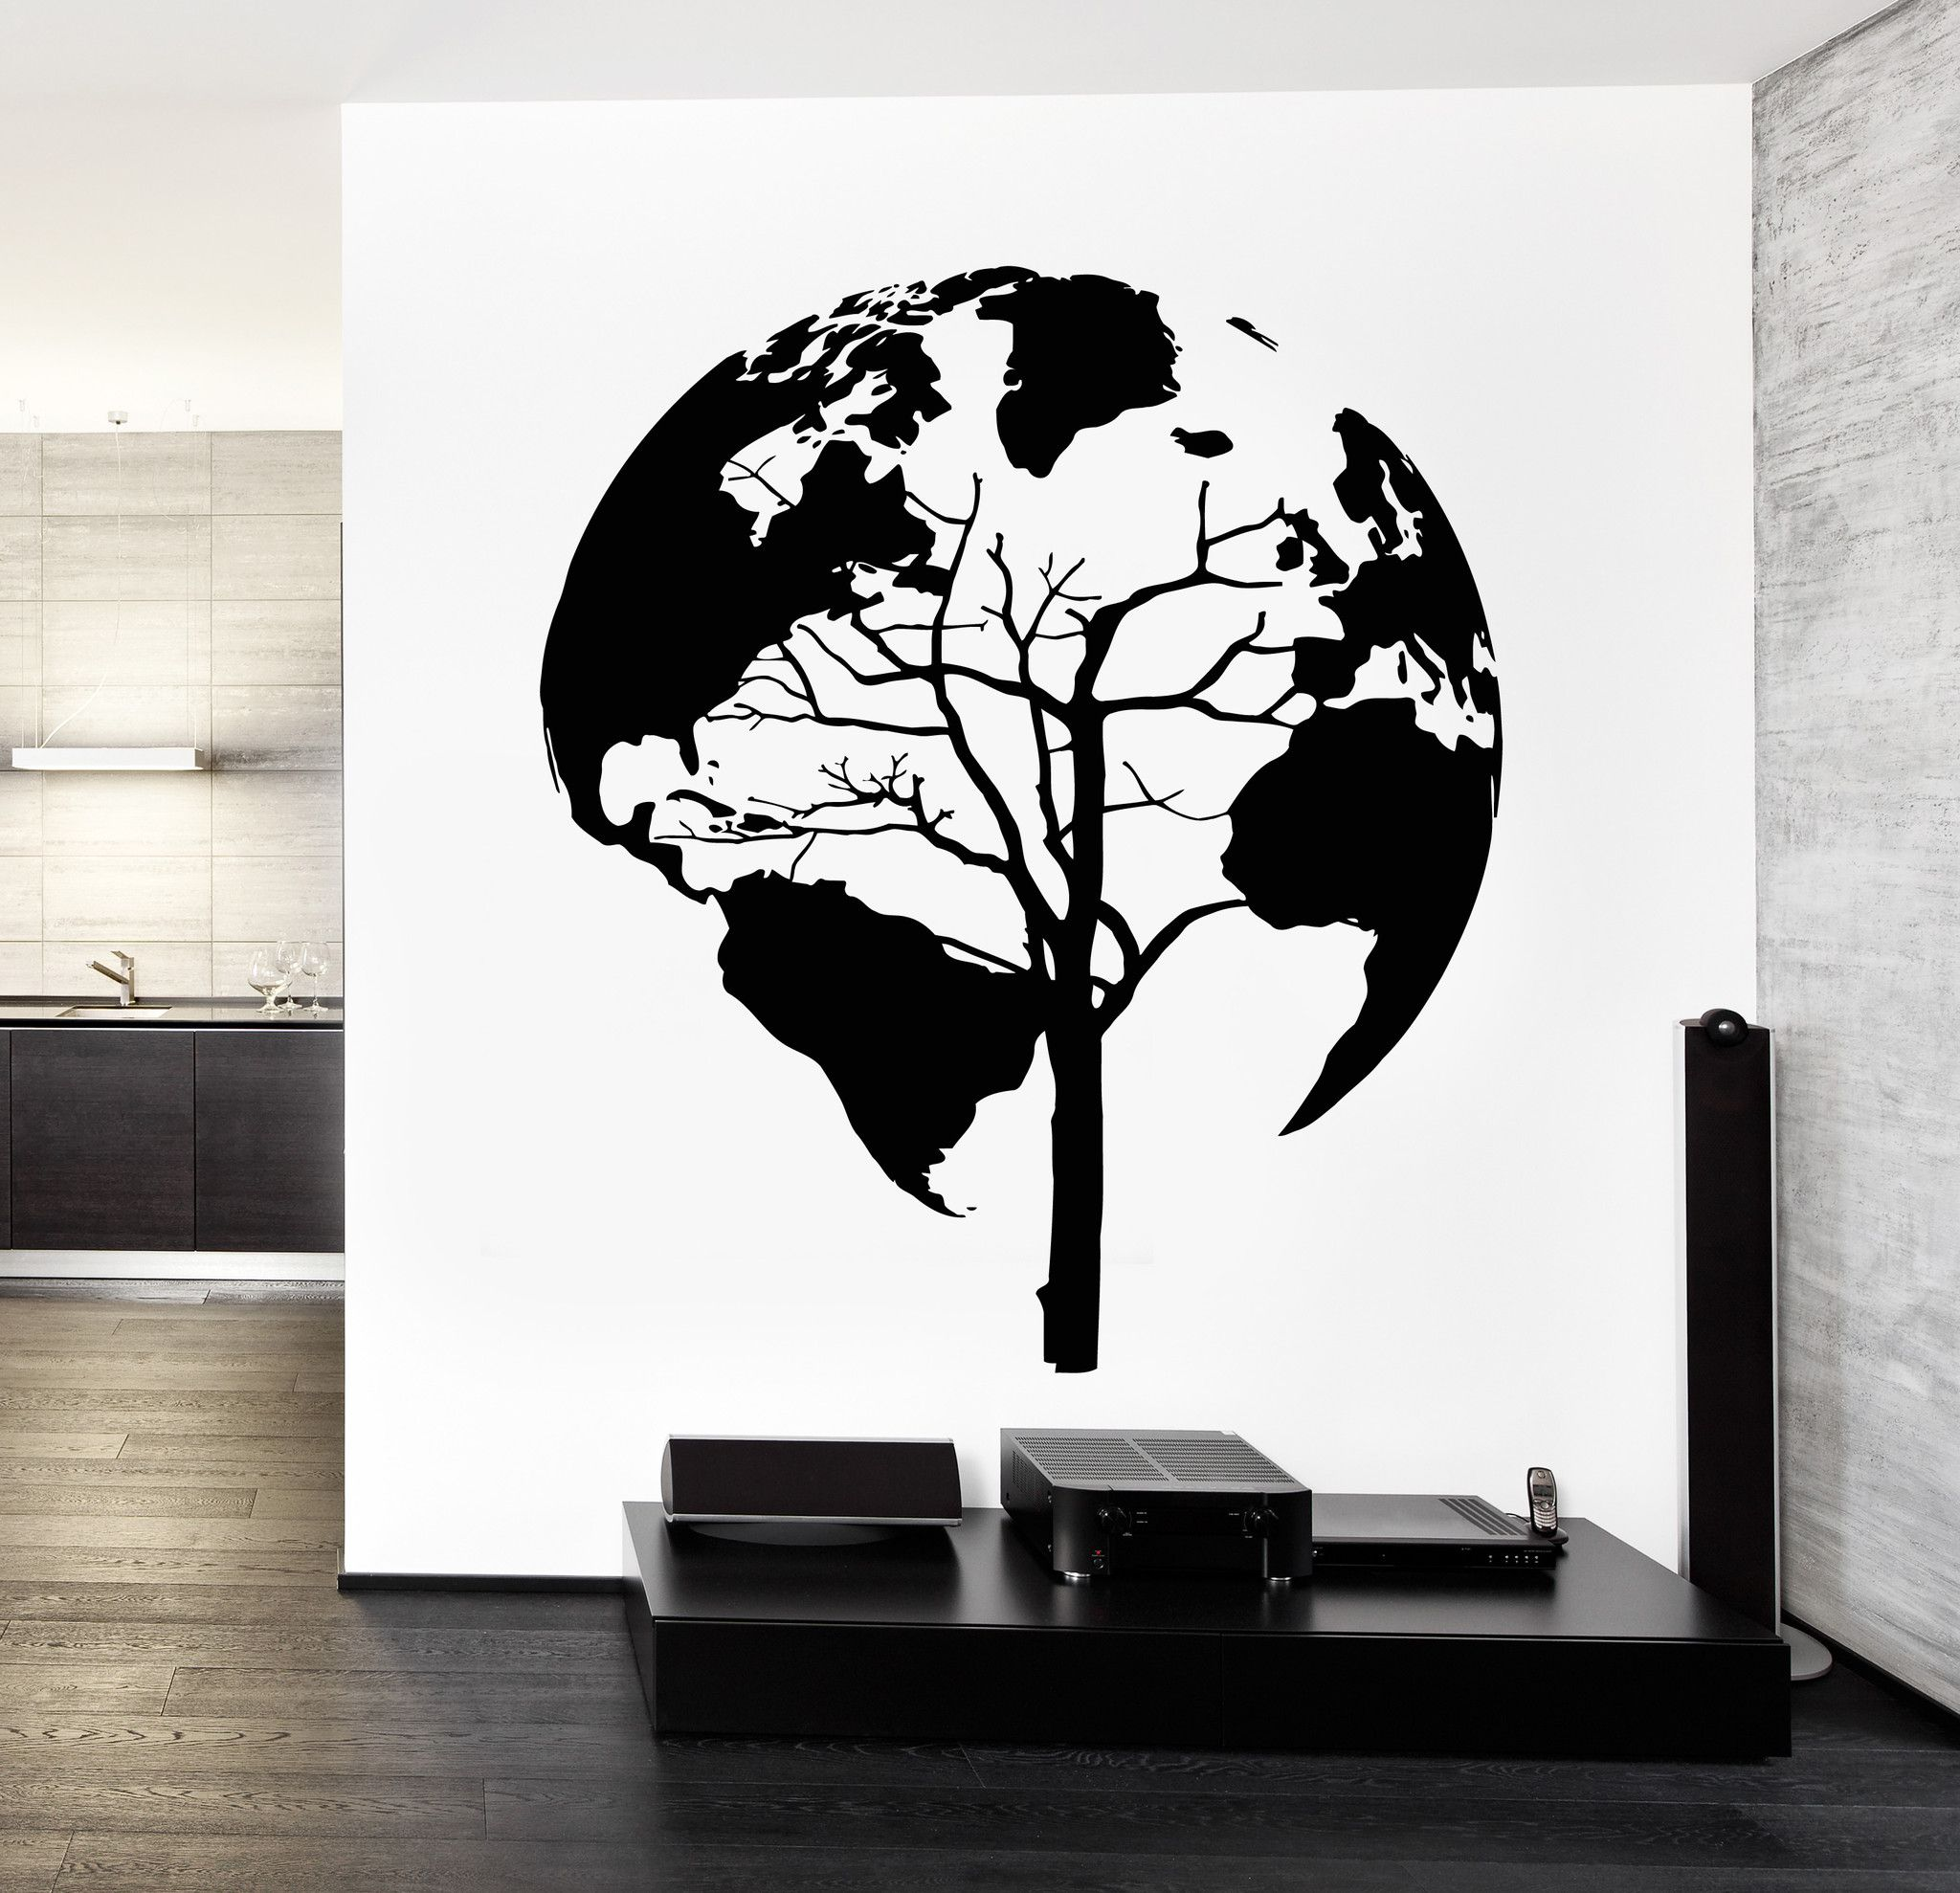 Cool Wall Decal Wall Decal World Map Tree Cool Abstract Vinyl Sticker